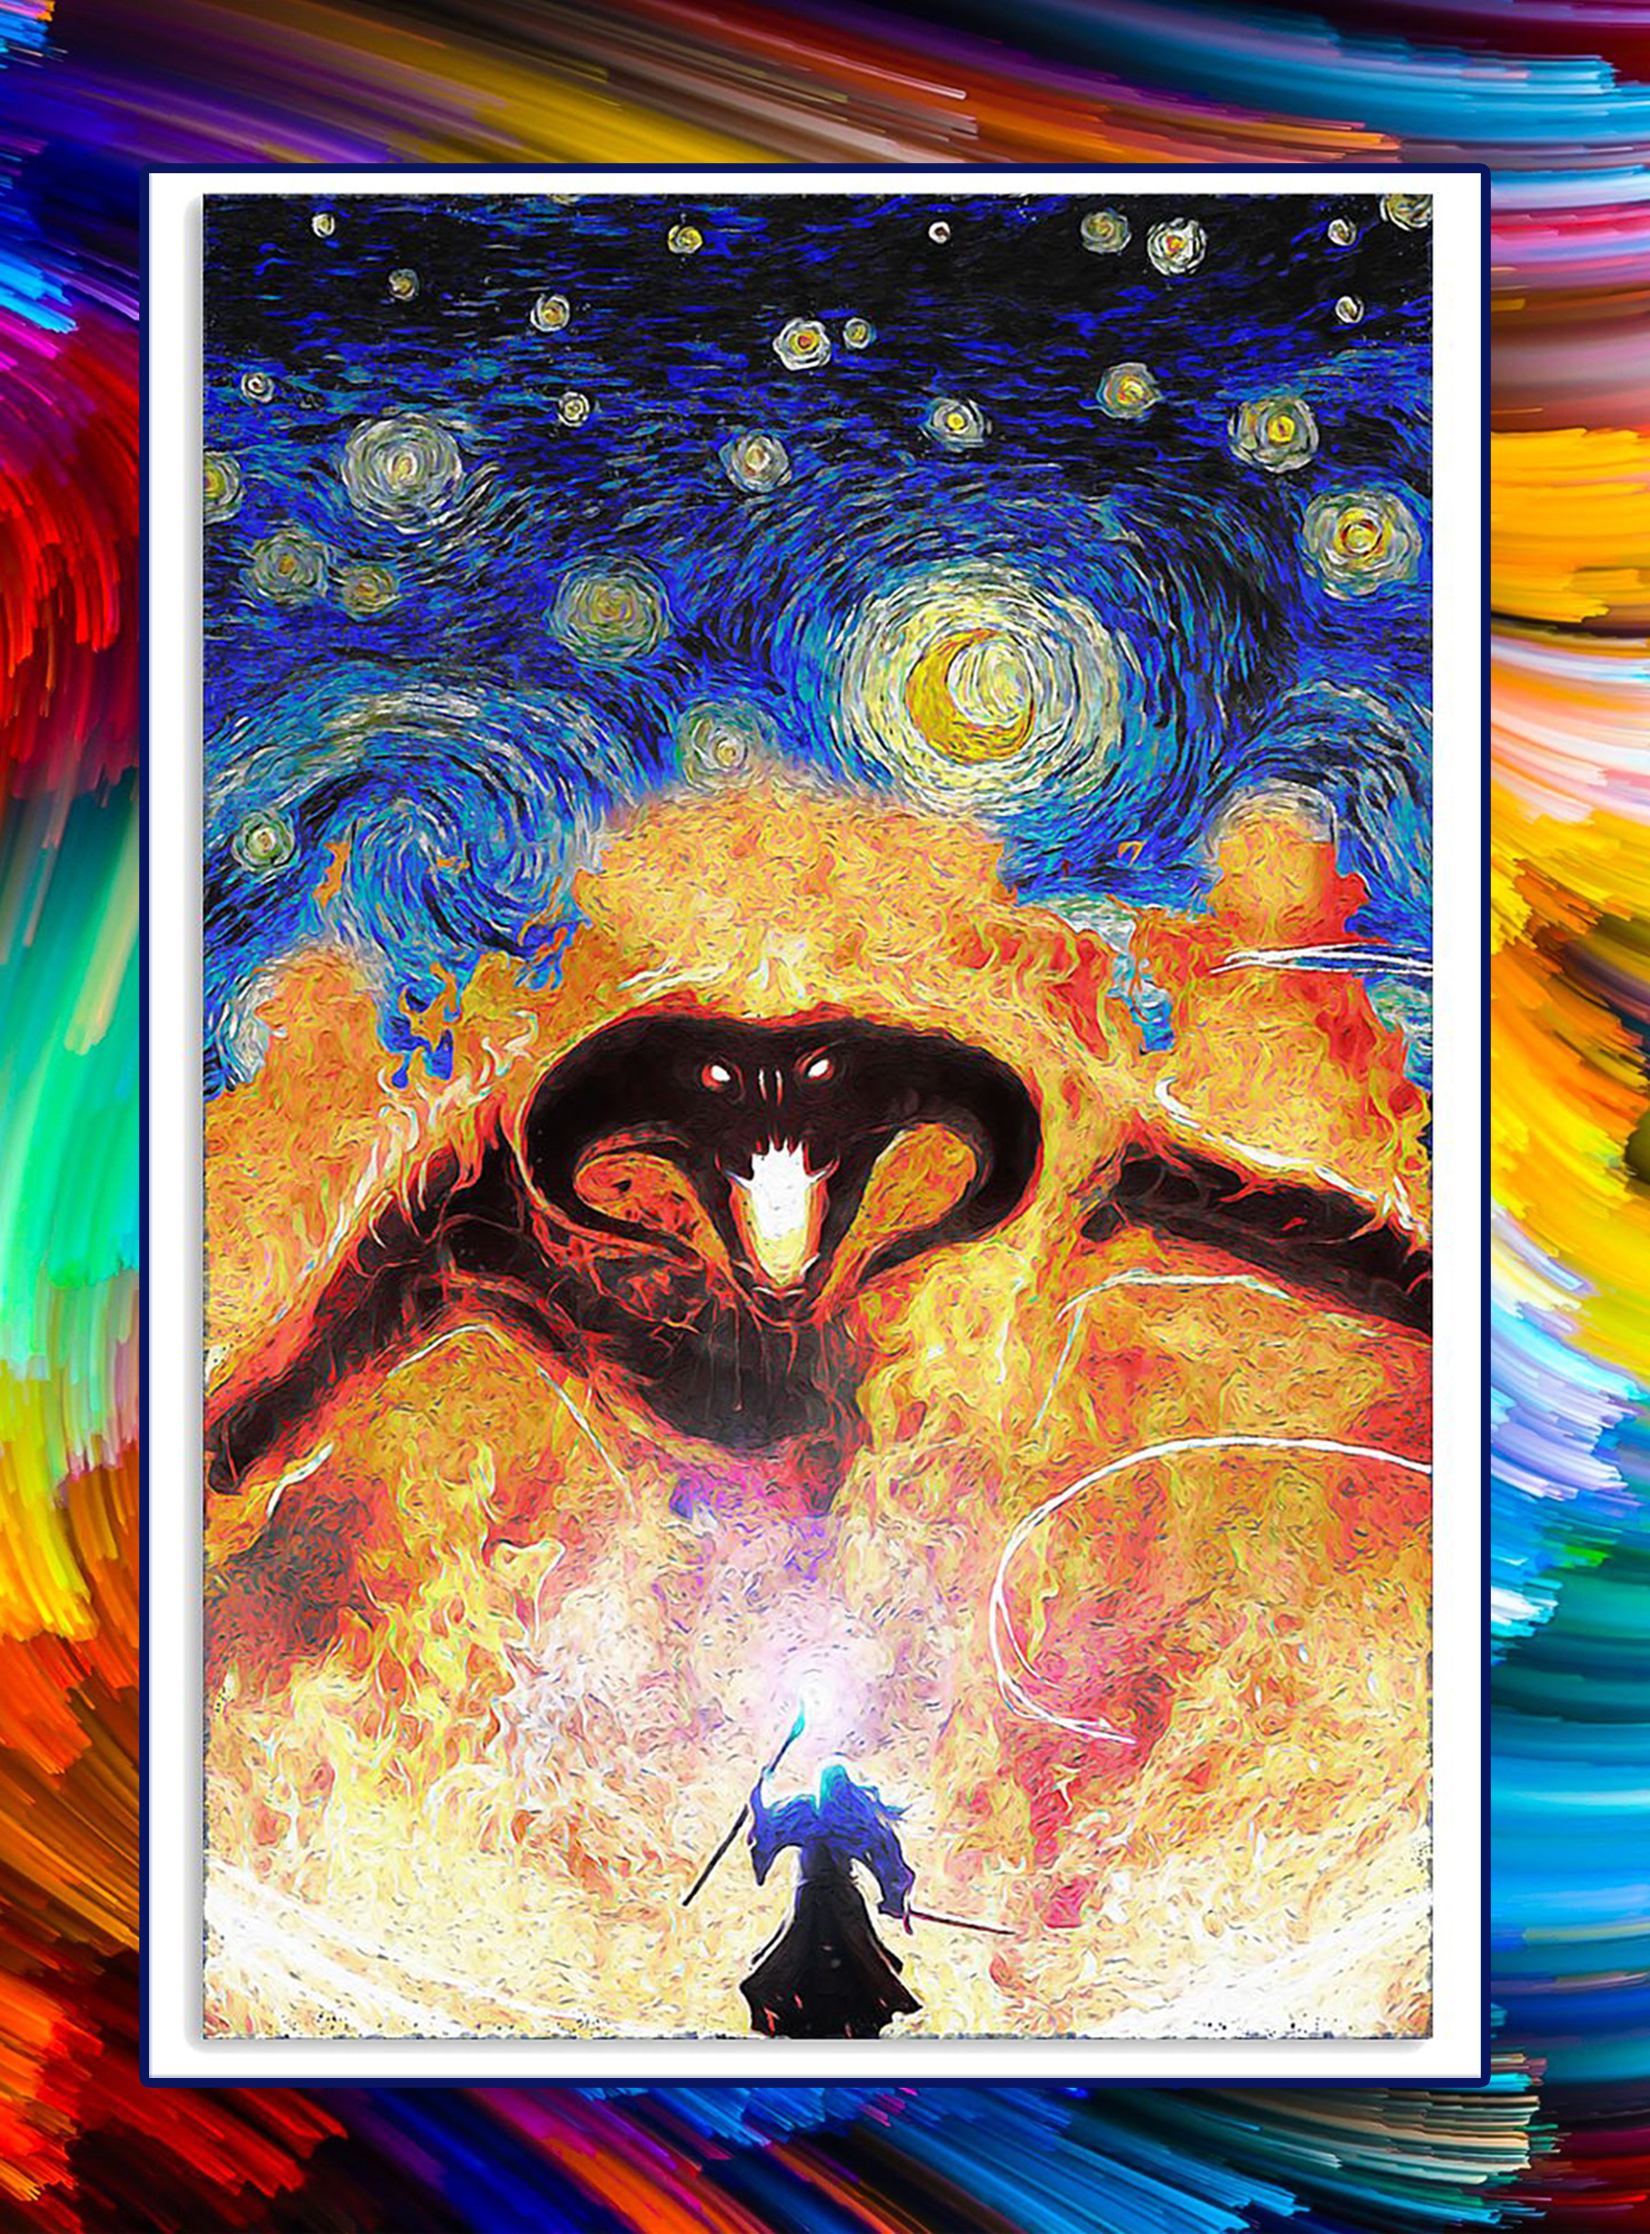 Balrog fire demon starry night poster - A1